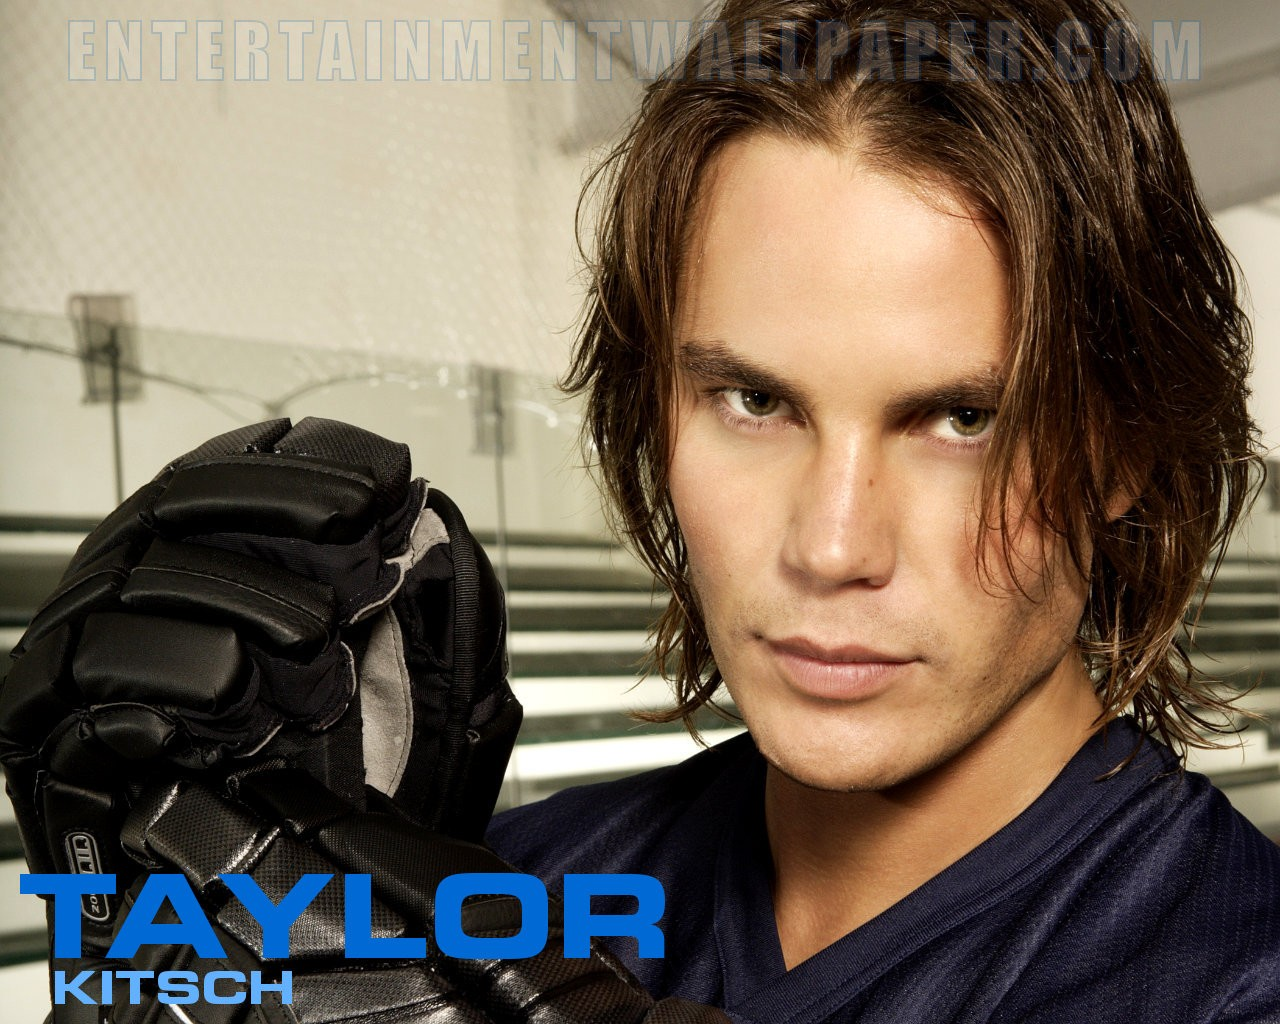 1280x1024 - Taylor Kitsch Wallpapers 22